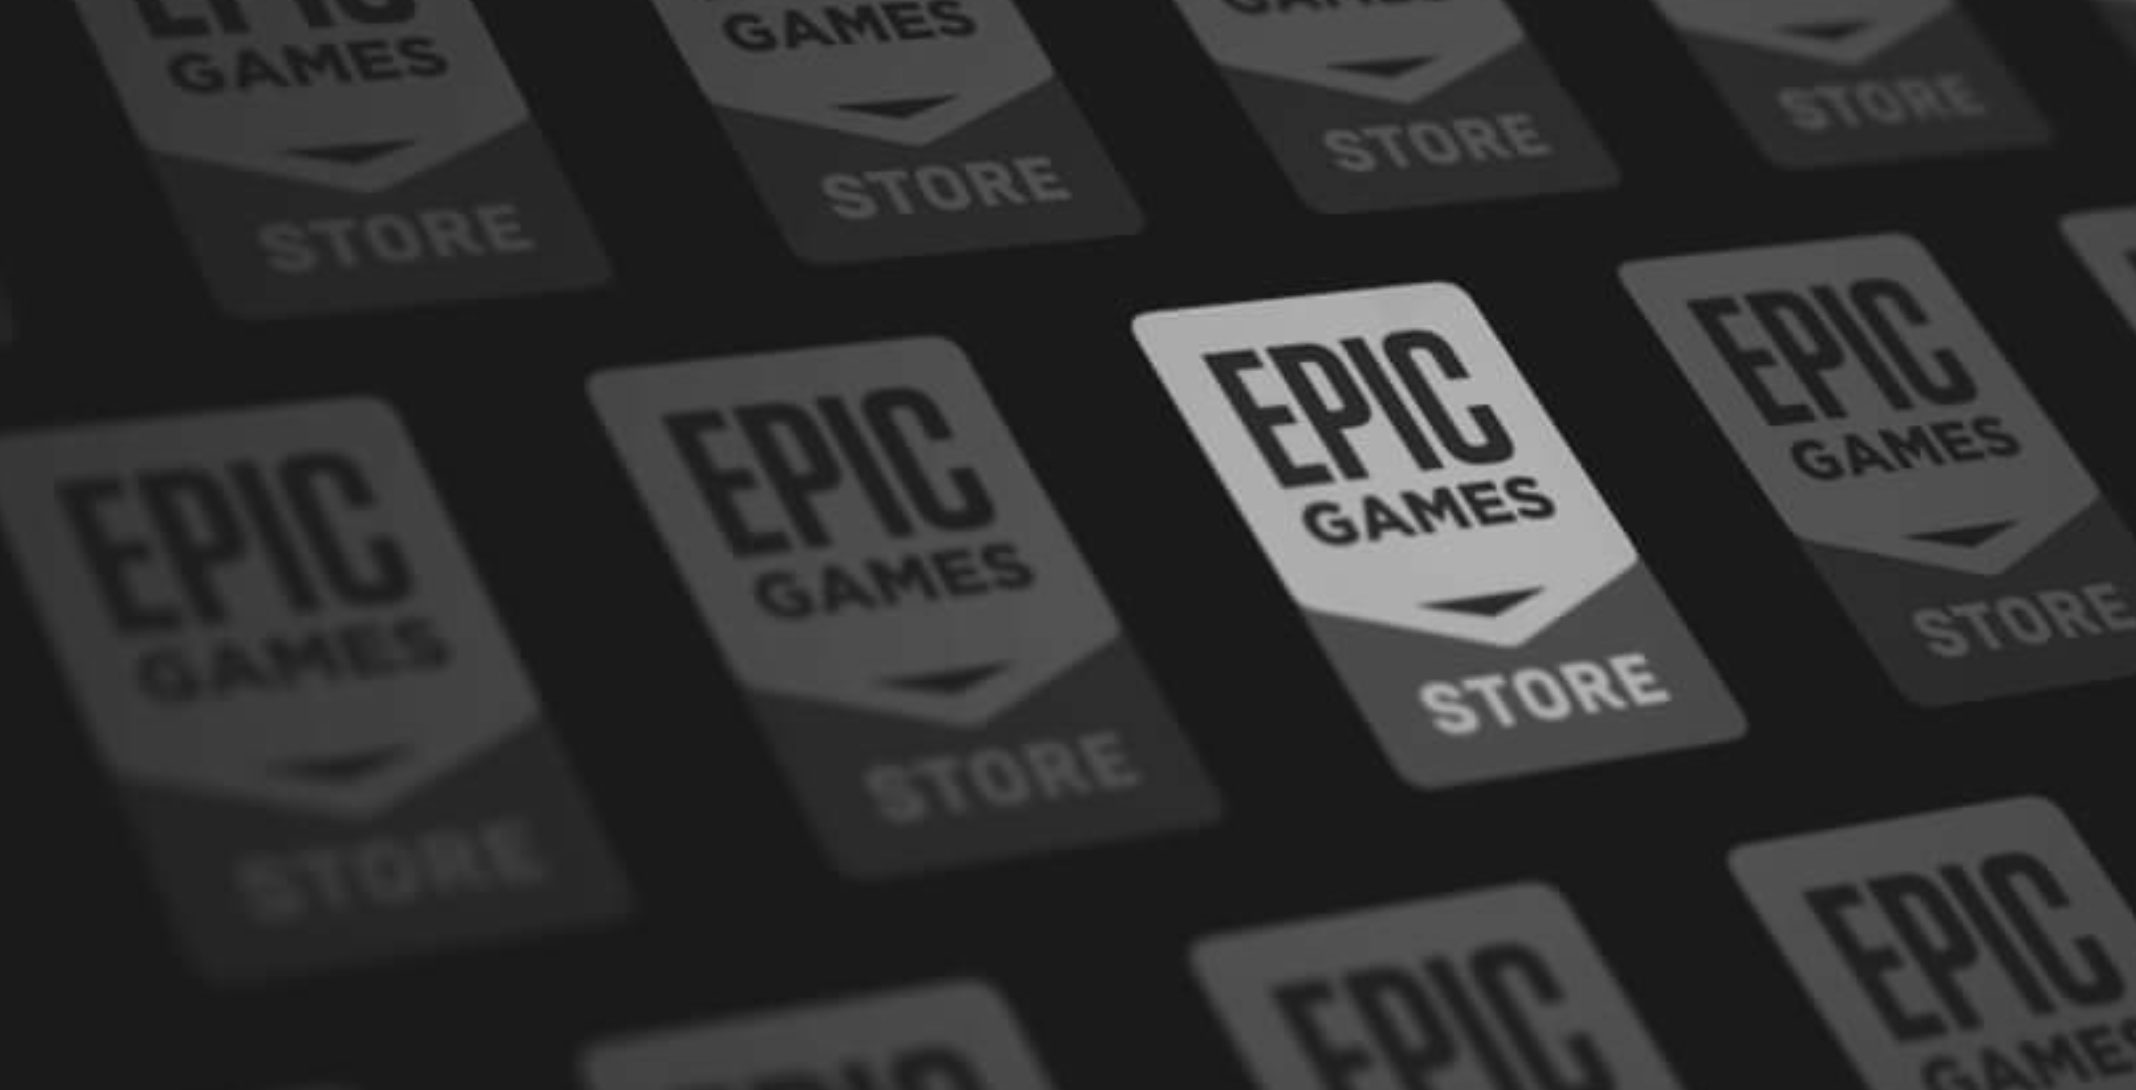 The Epic Games Store has amassed more than 108 million users